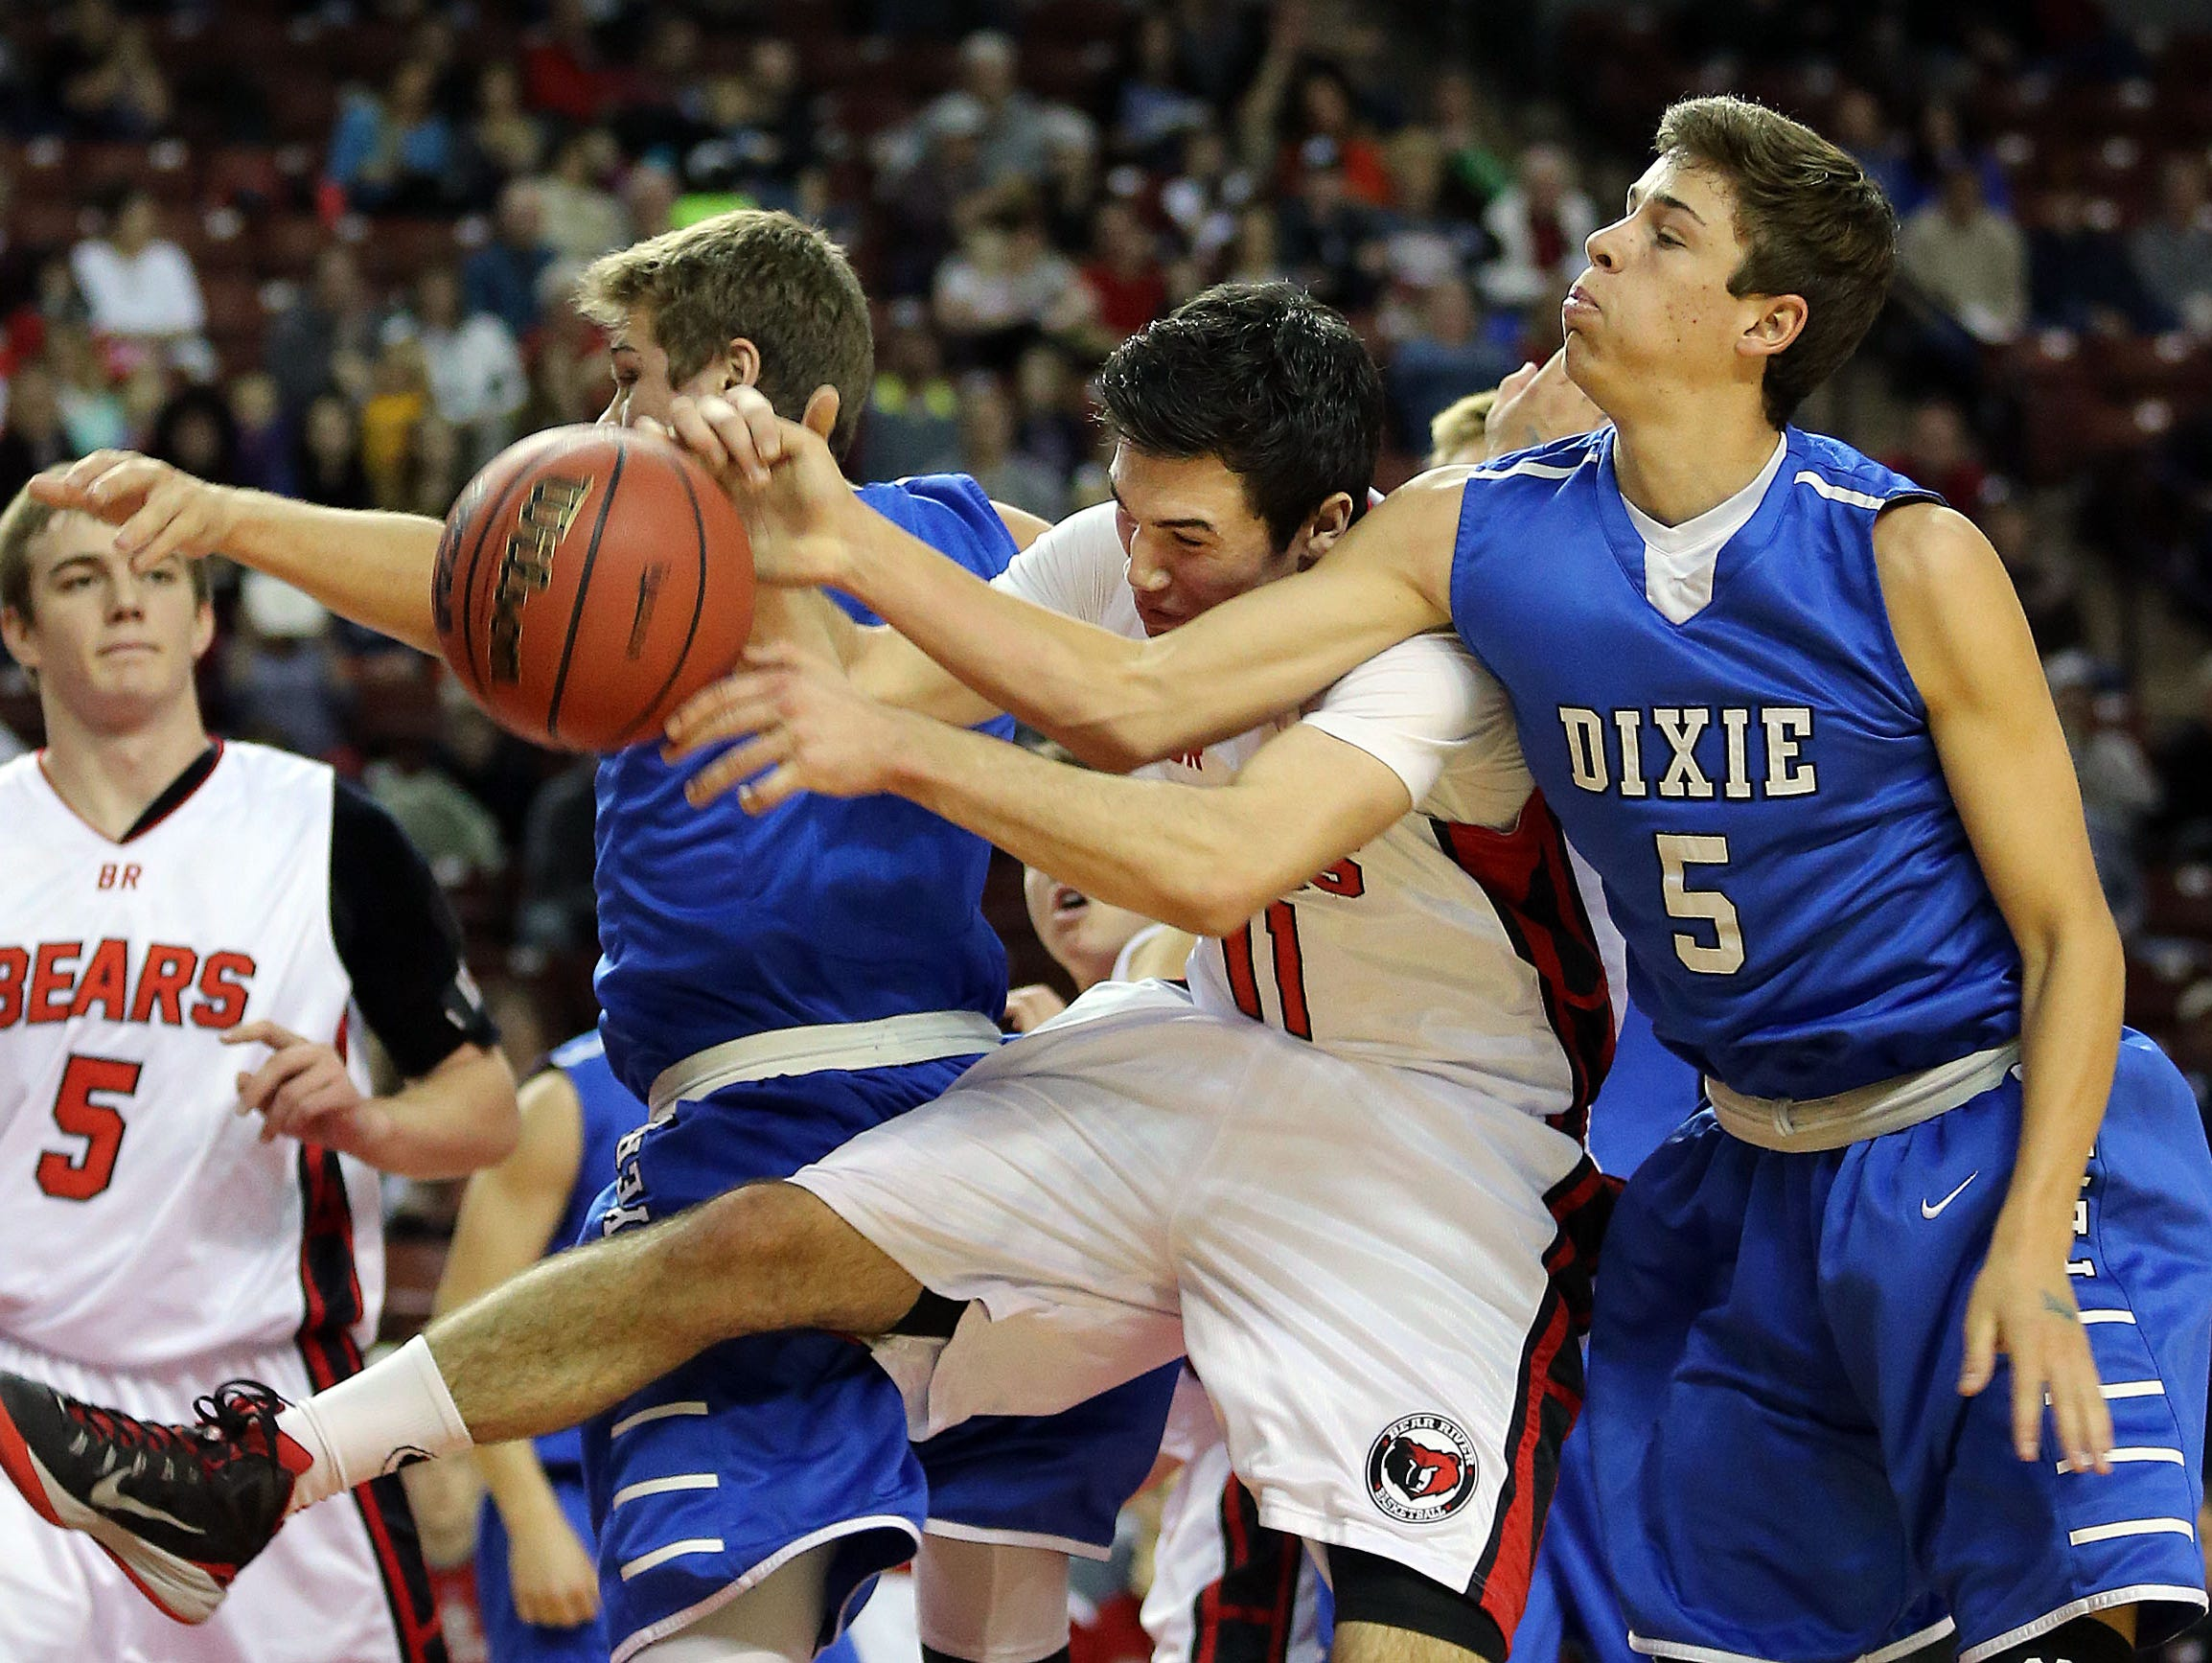 In one of the most exciting finishes in Utah high school basketball history, Tyler Bennett drained a 3-pointer at the buzzer to propel Dixie over Bear River, February 2015, West Valley City.